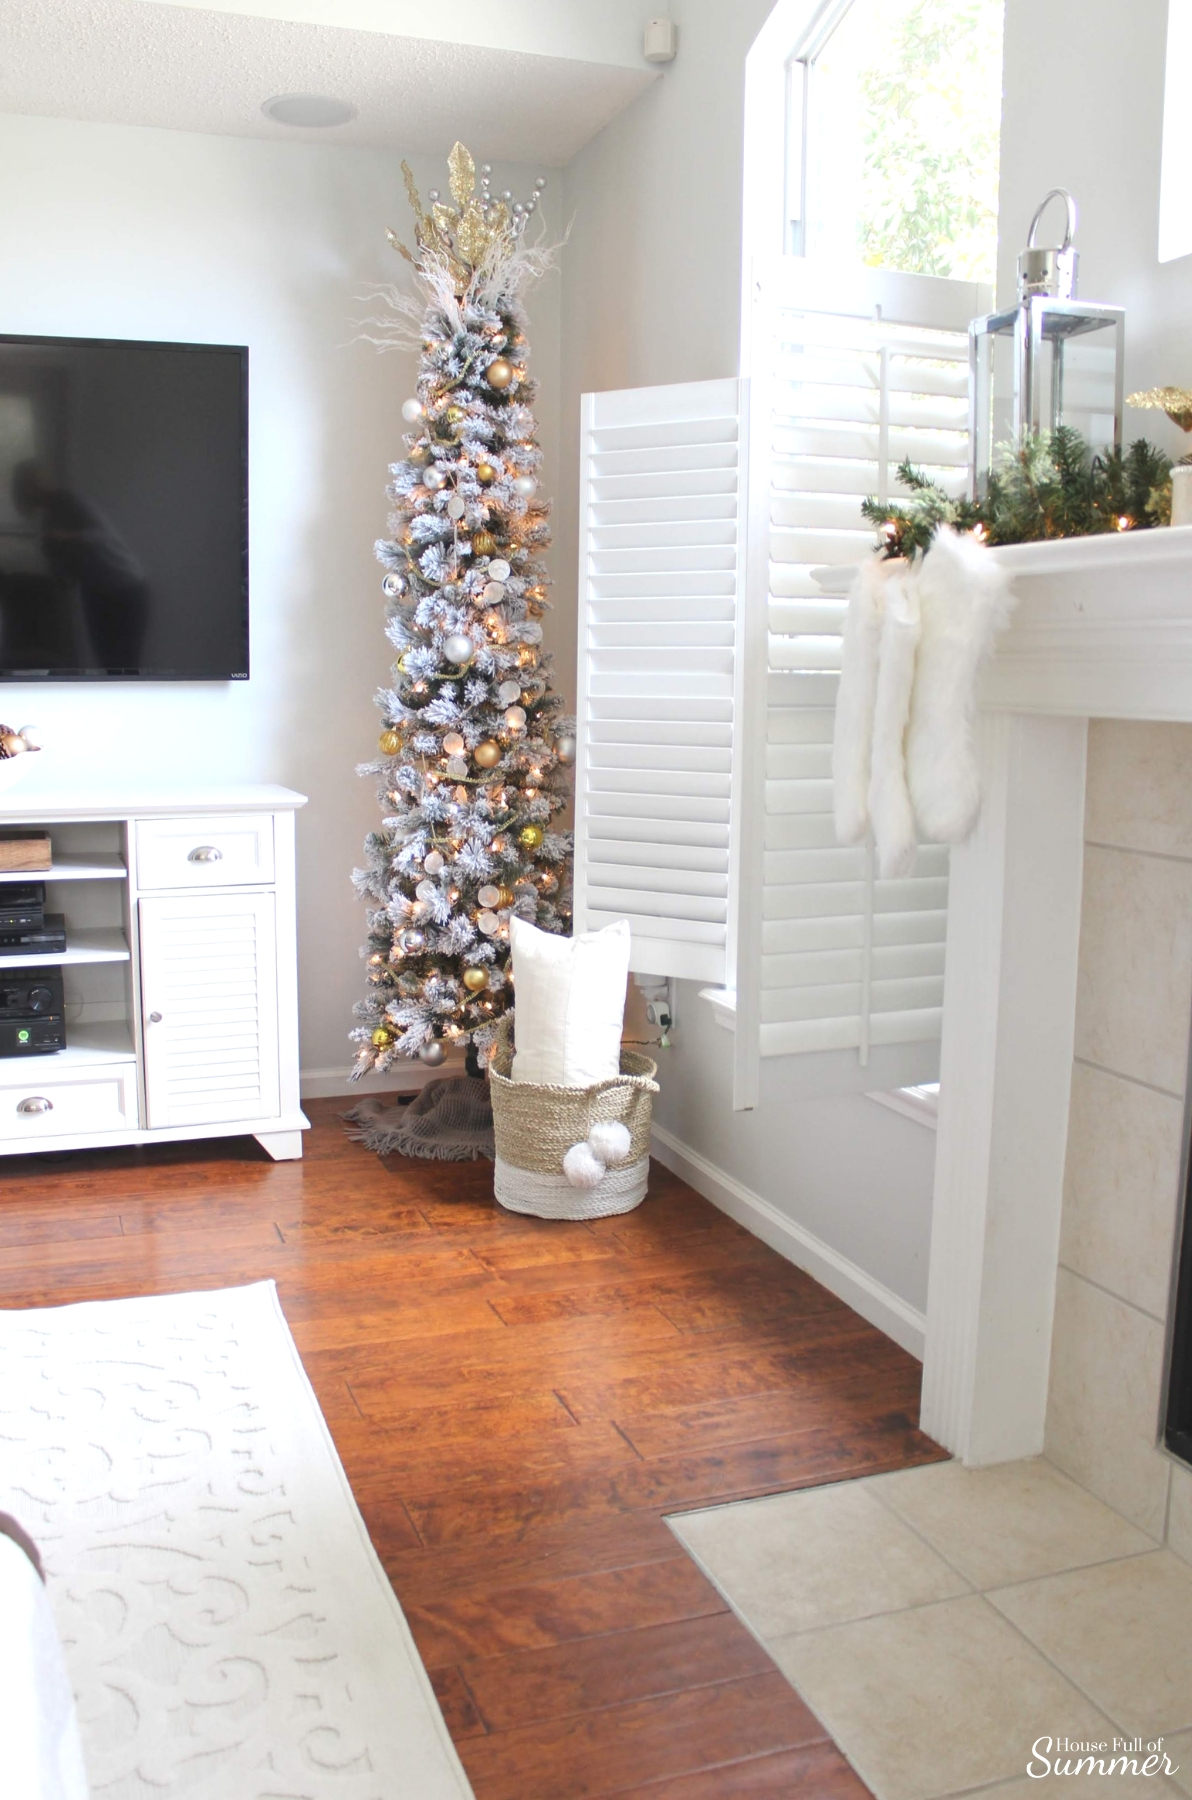 A Charming Southern Christmas Home Tour {Part 2} | House Full of Summer - Master Bedroom Christmas decor ideas, navy Christmas decorations, blue and white holiday decor, foyer, Gold Magnolias and Southern influences in Christmas decor, neutral Christmas decorating, foyer, living room, Christmas centerpiece, greenery, DIY holiday arrangement, coastal decor, Southern Christmas tree ornament ideas tassel ornaments, flocked pencil tree, mantle decor, coastal home christmas